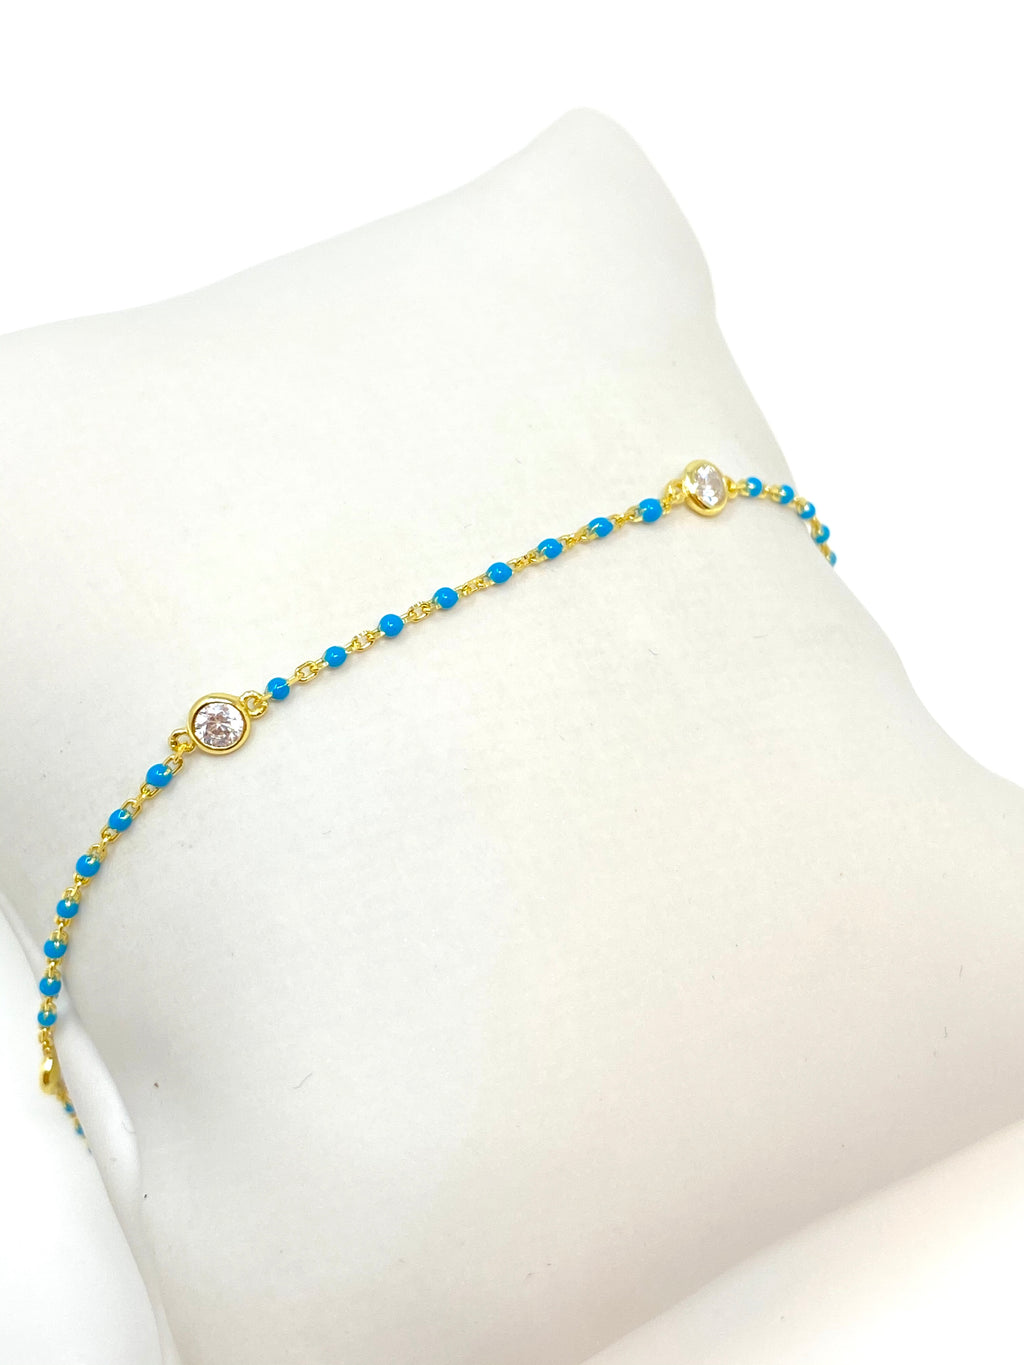 Dot Chain with Stones Anklet in Turquoise